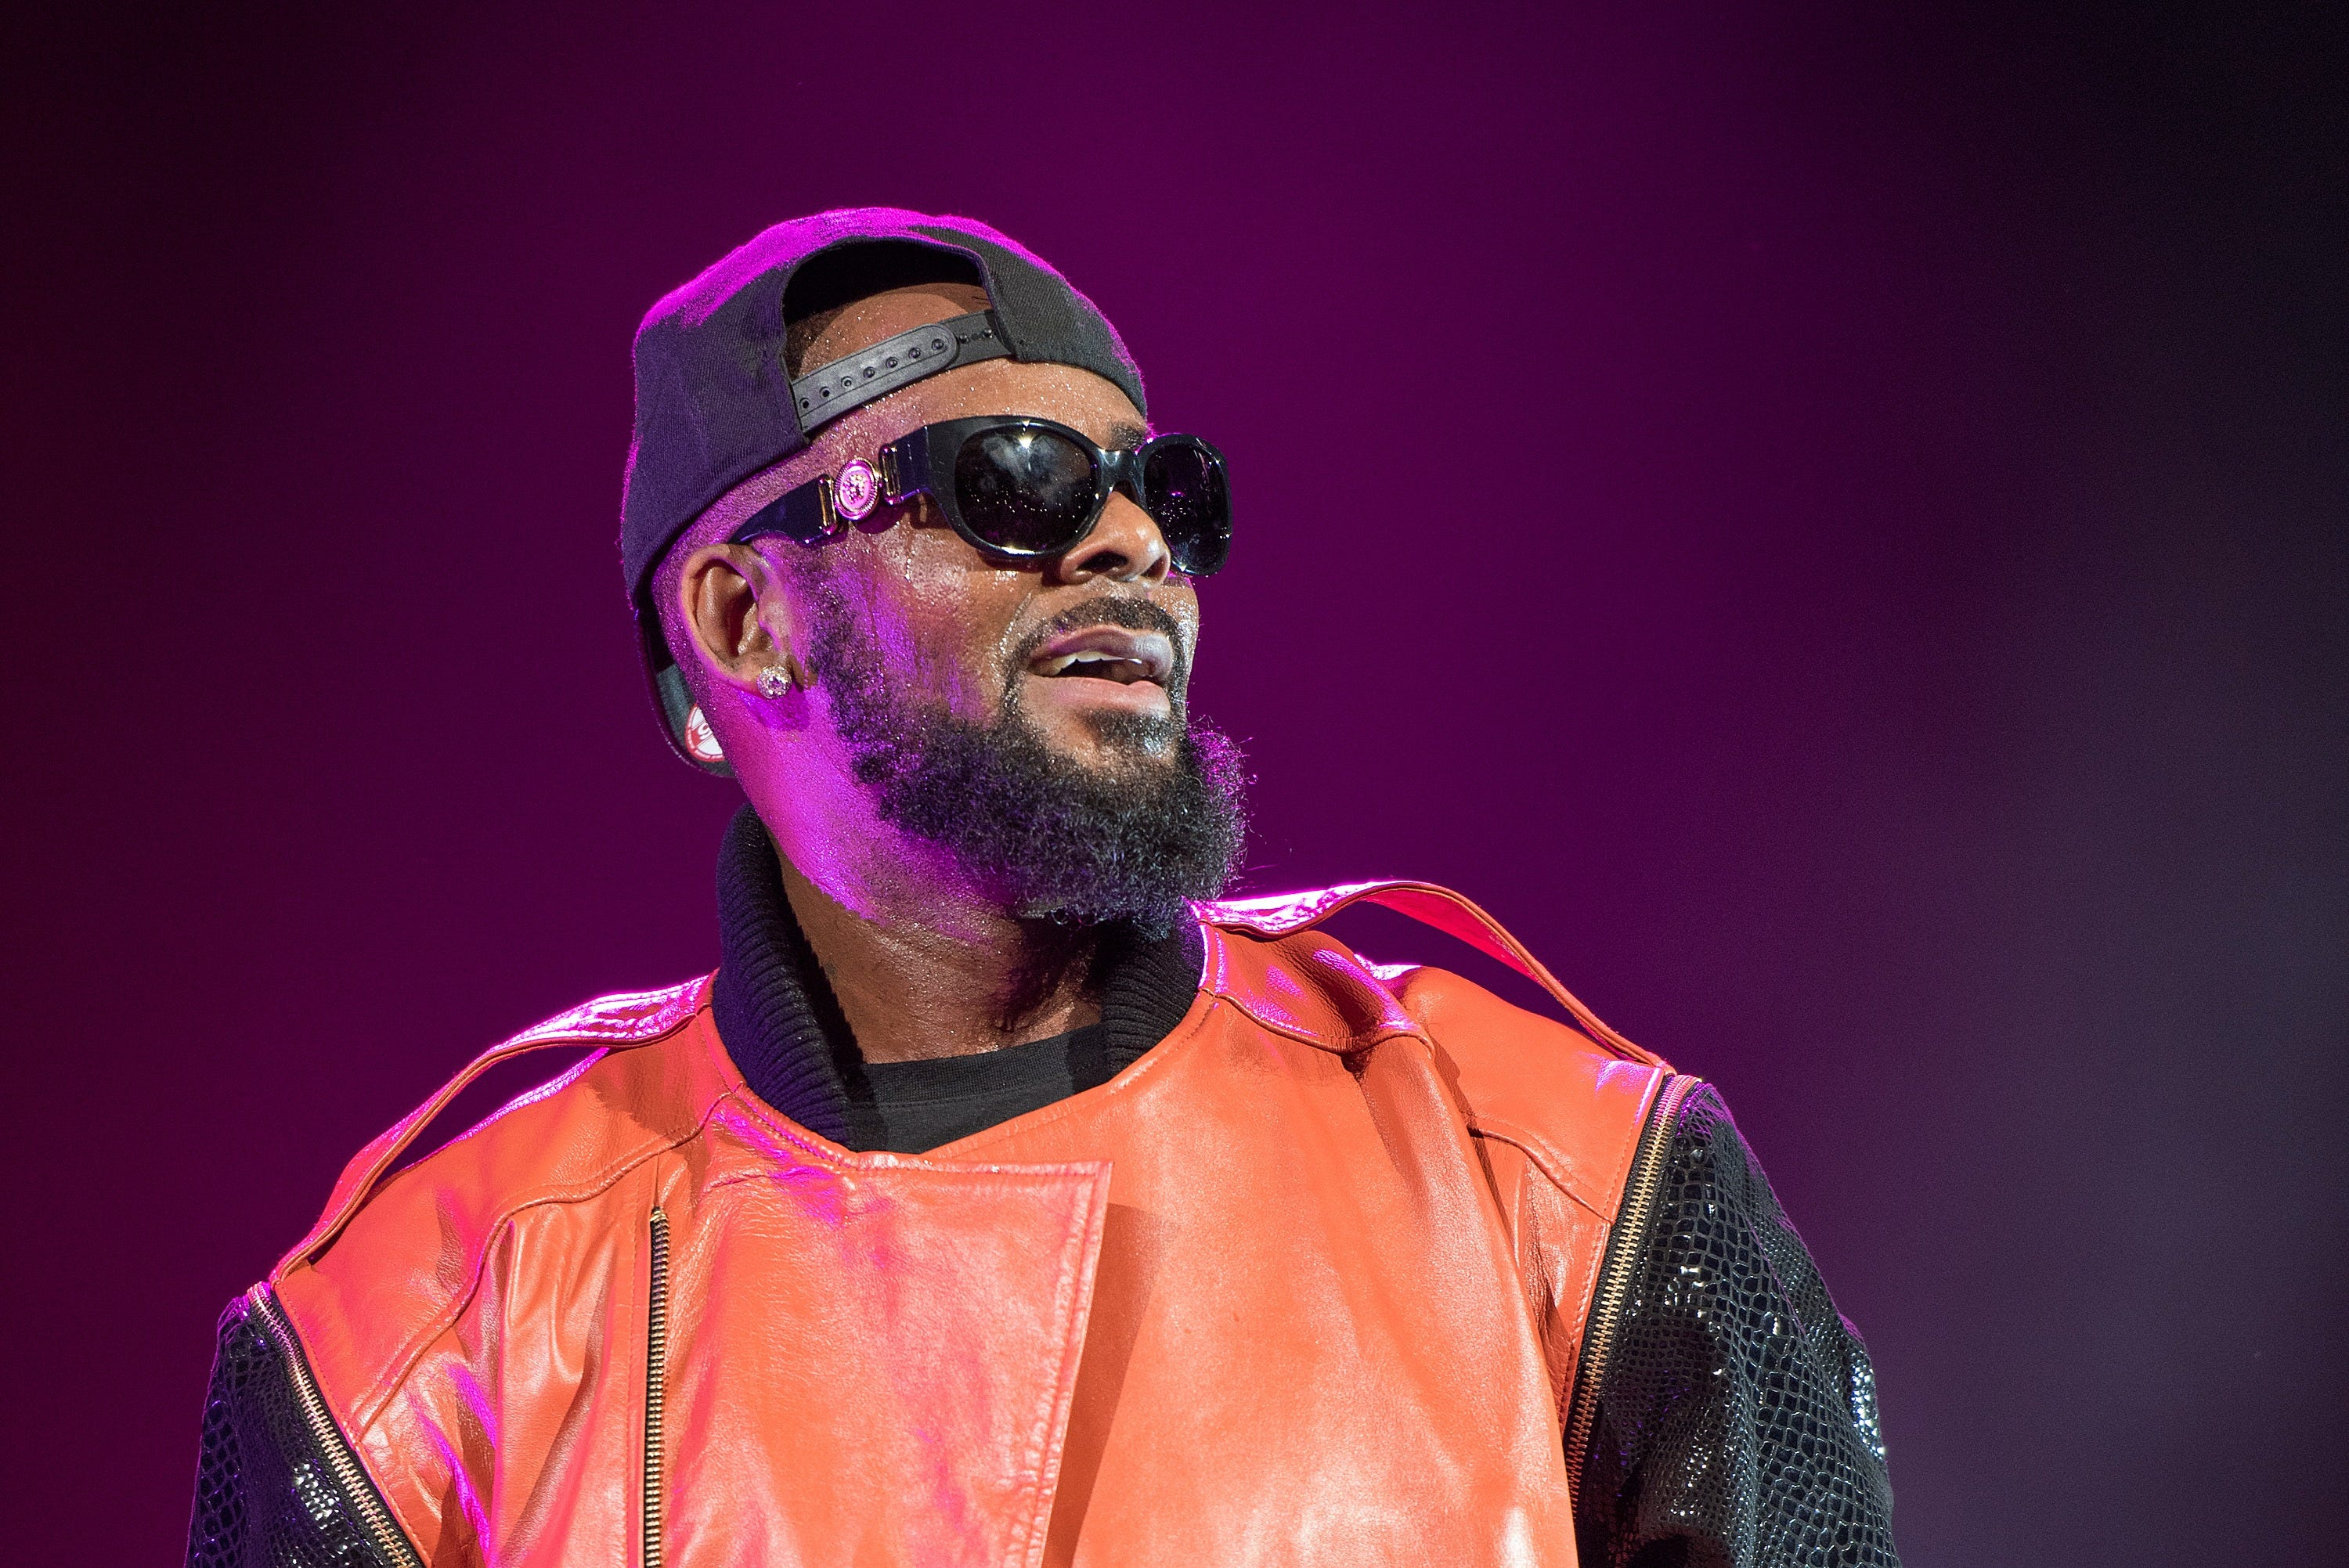 R. Kelly's daughter breaks silence on 'monster' father: 'Devastated is an understatement'